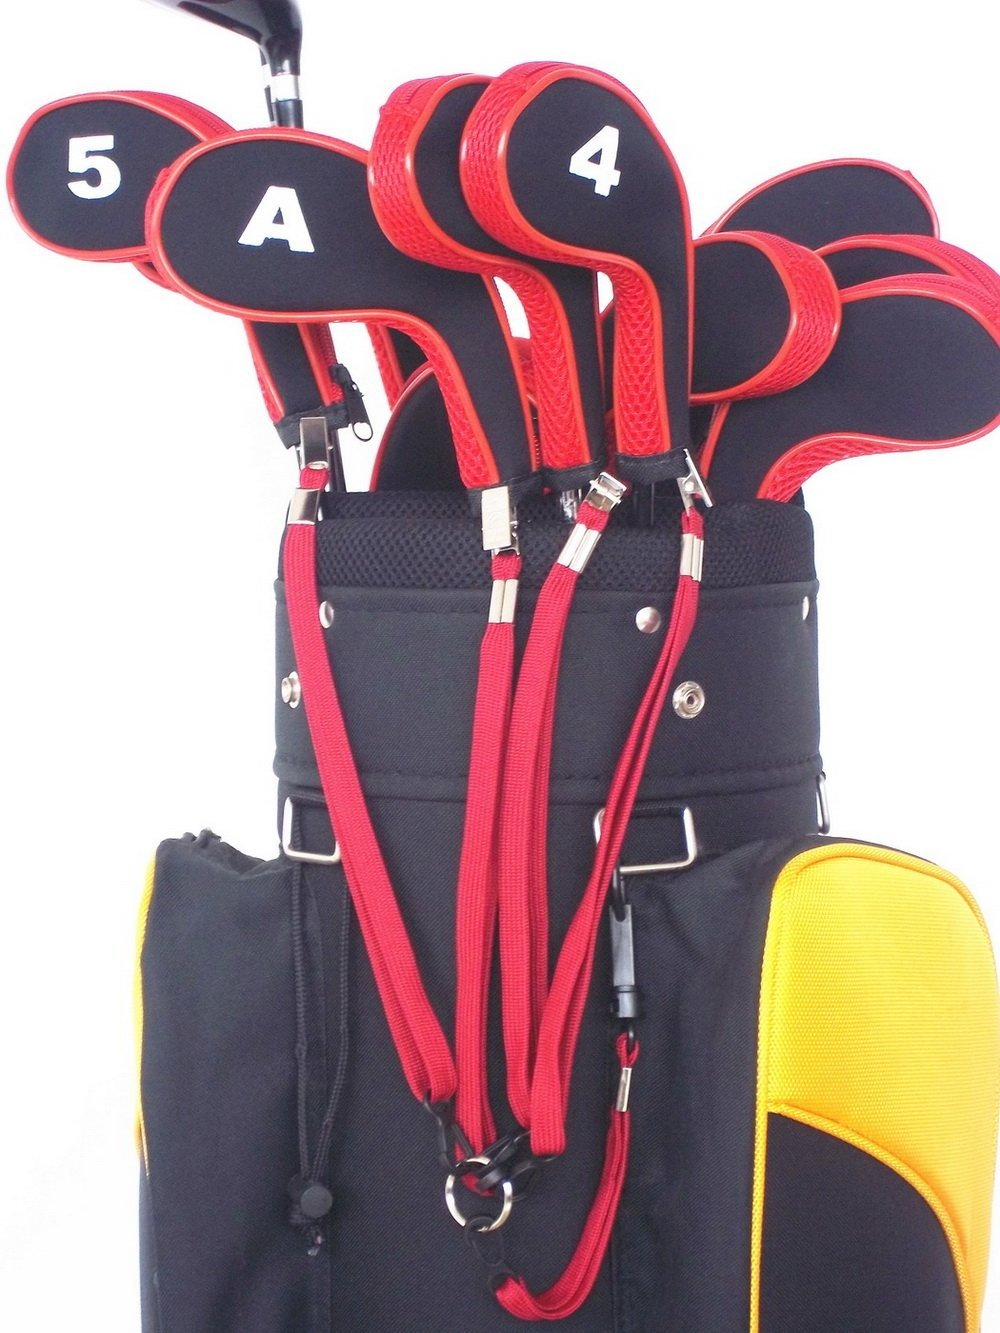 A99 Golf Leash Strap 4 II Black with Bag Strap Red by A99 Golf (Image #4)